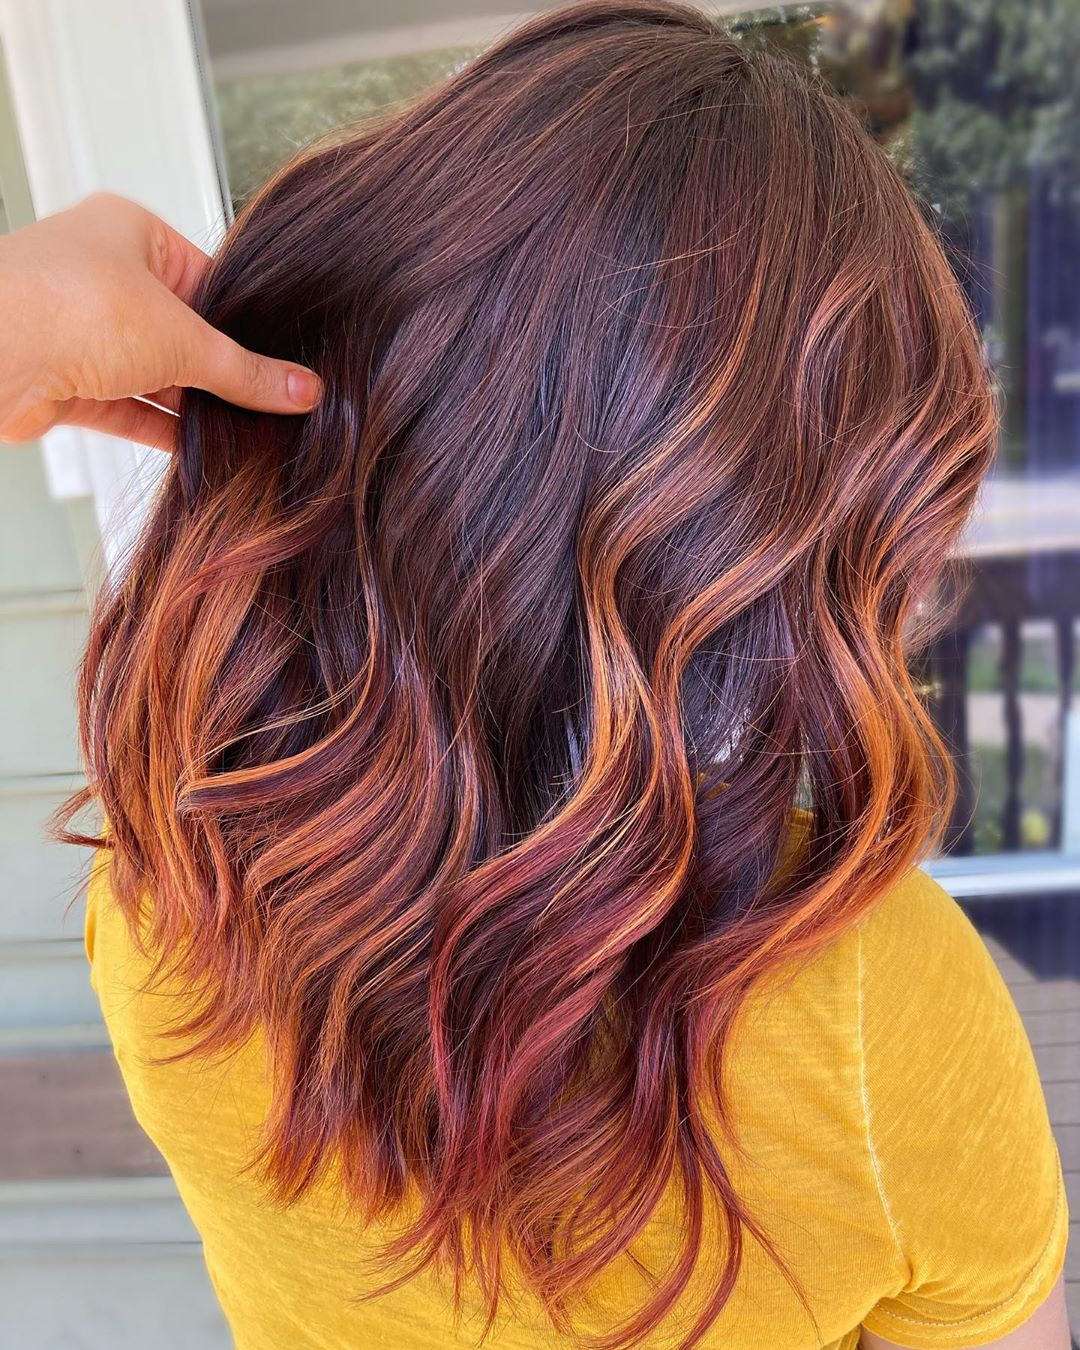 Burgundy Red and Caramel Balayage Highlights